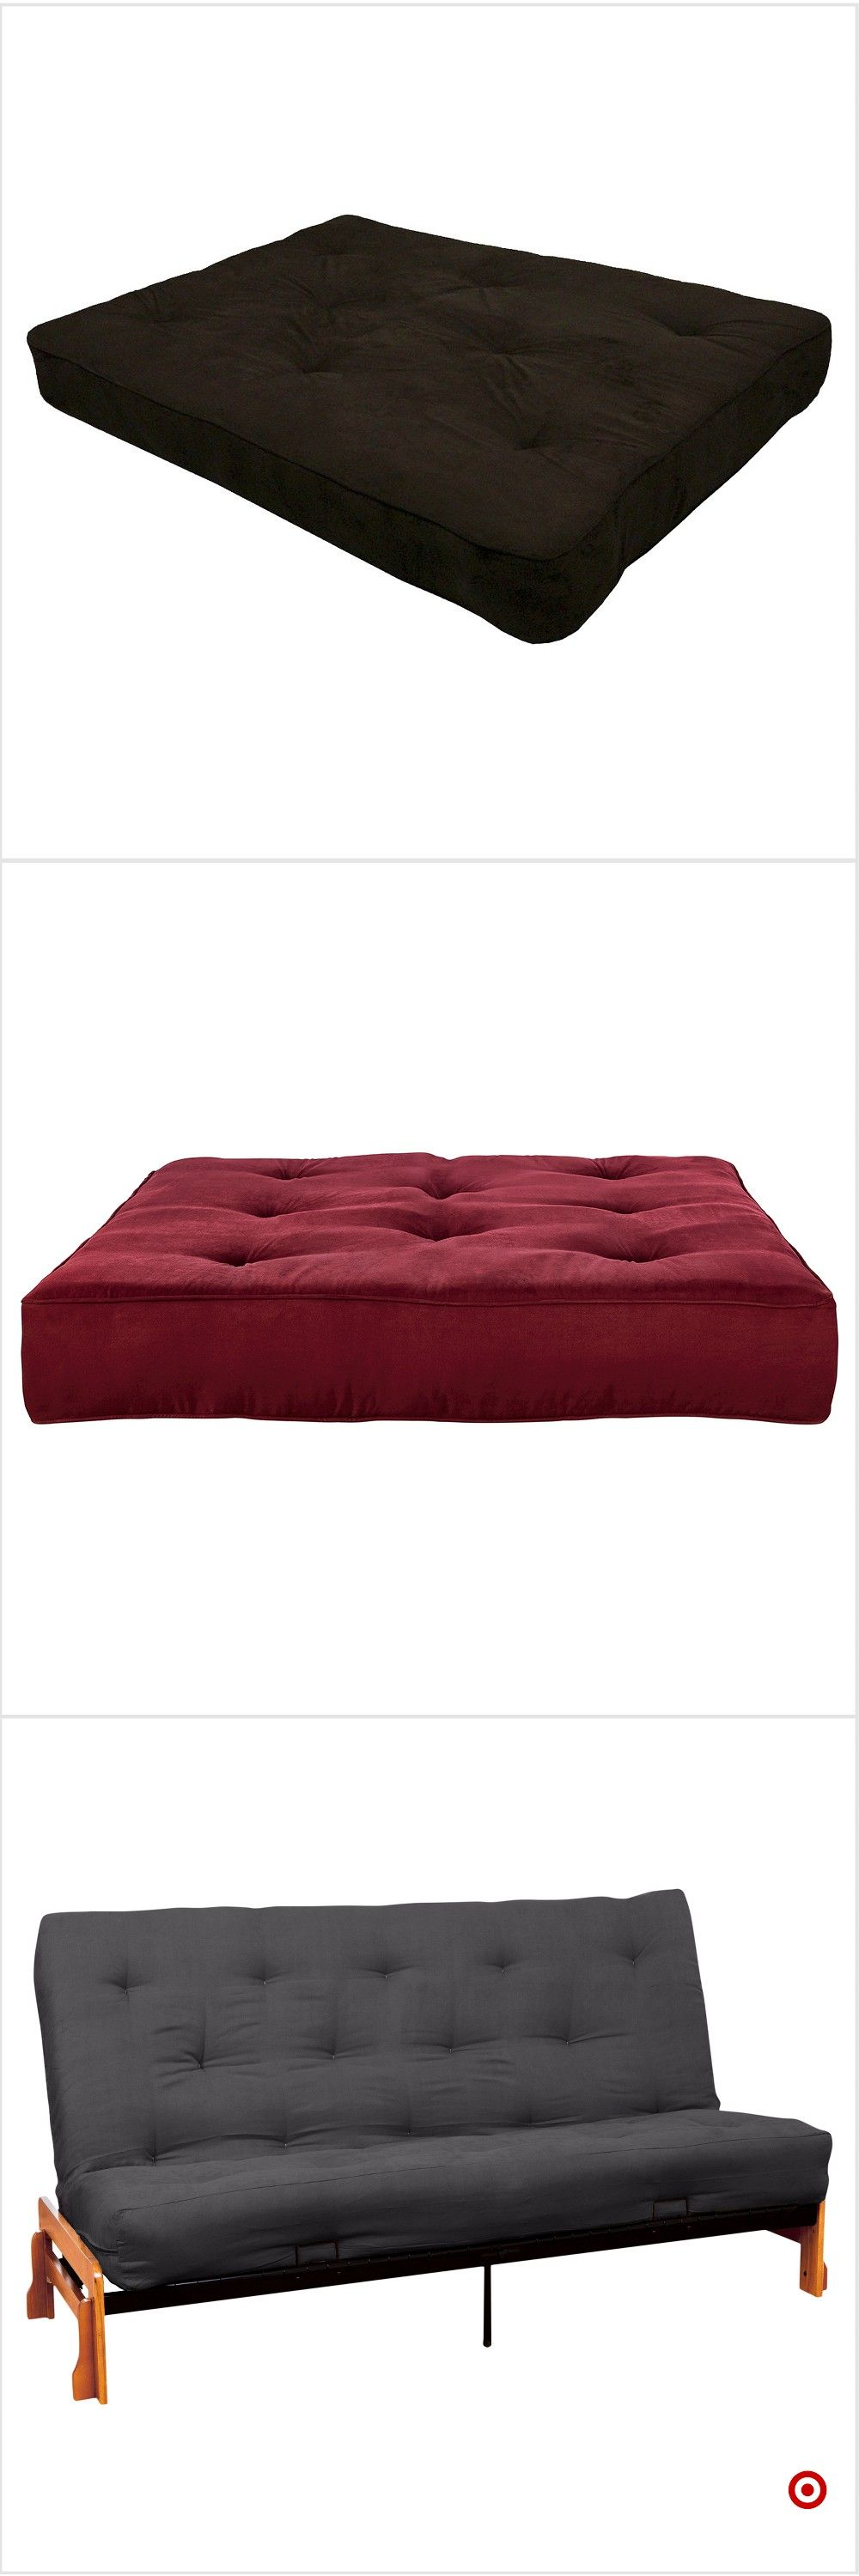 Target For Futon Mattress You Will